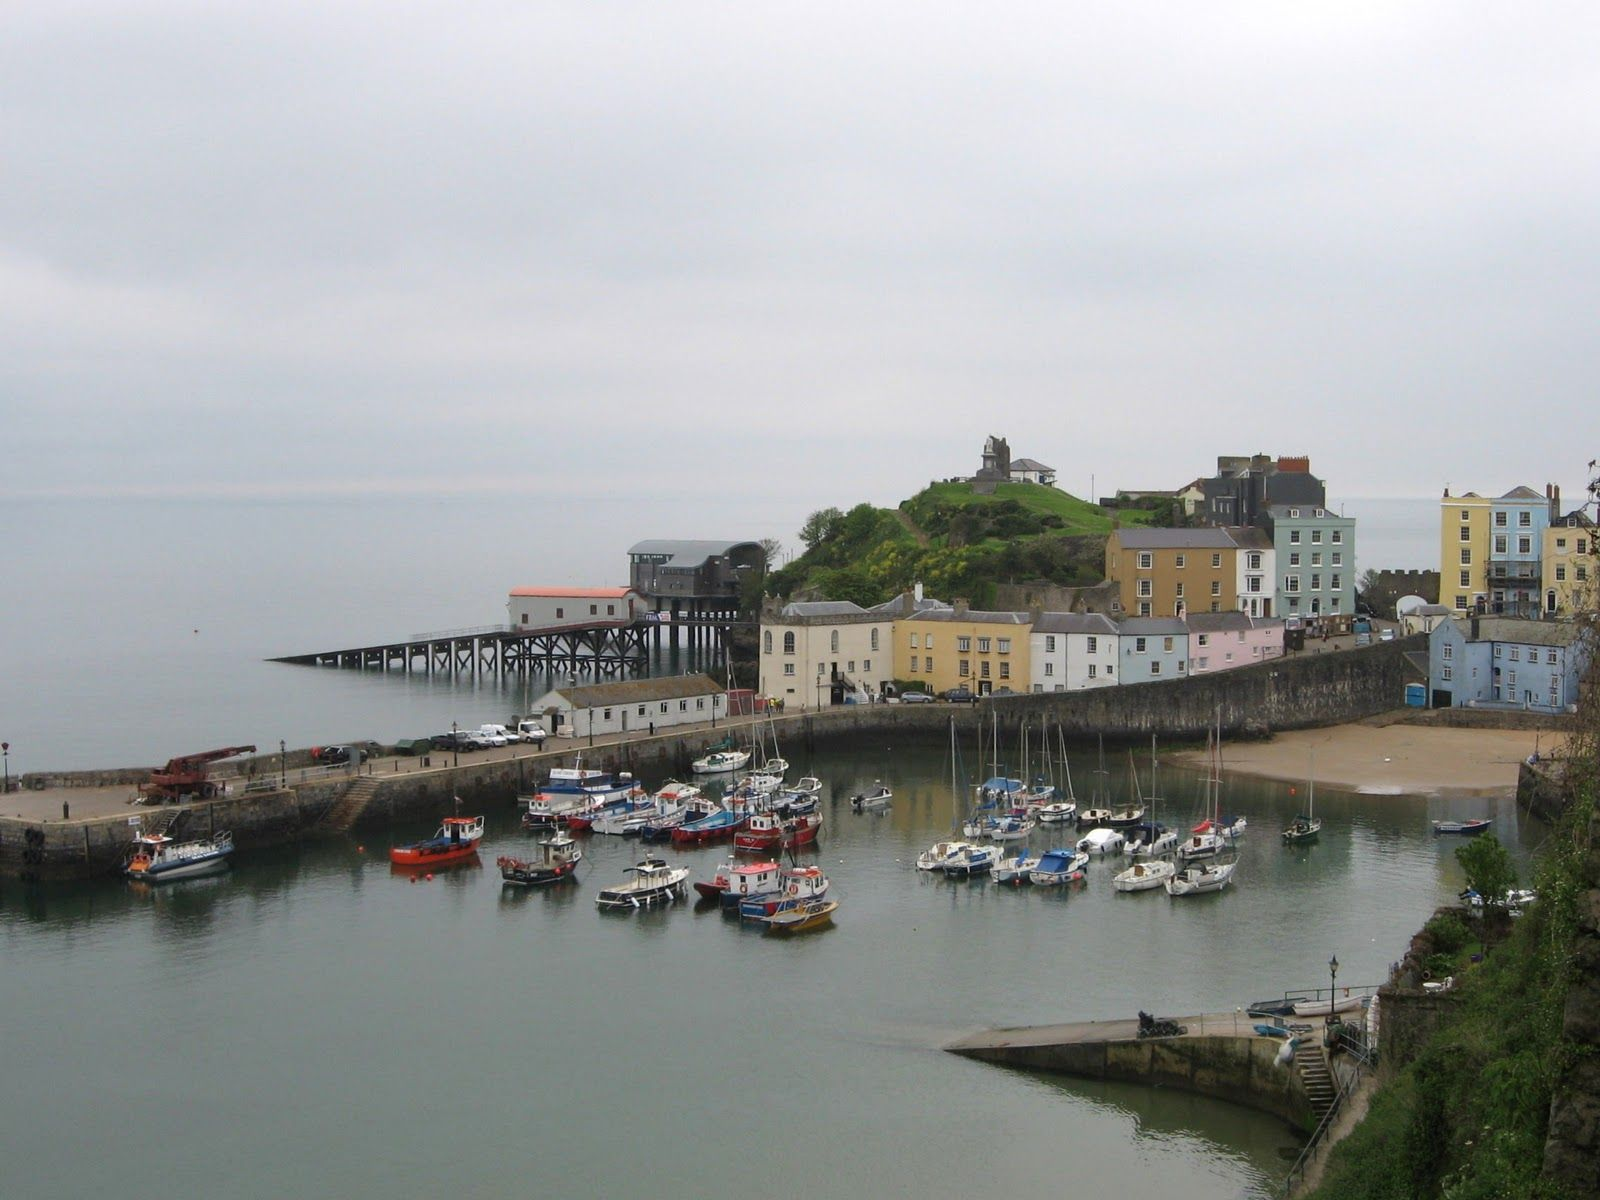 Fishguard, Wales and the ferry to Rosslare, Ireland. (With